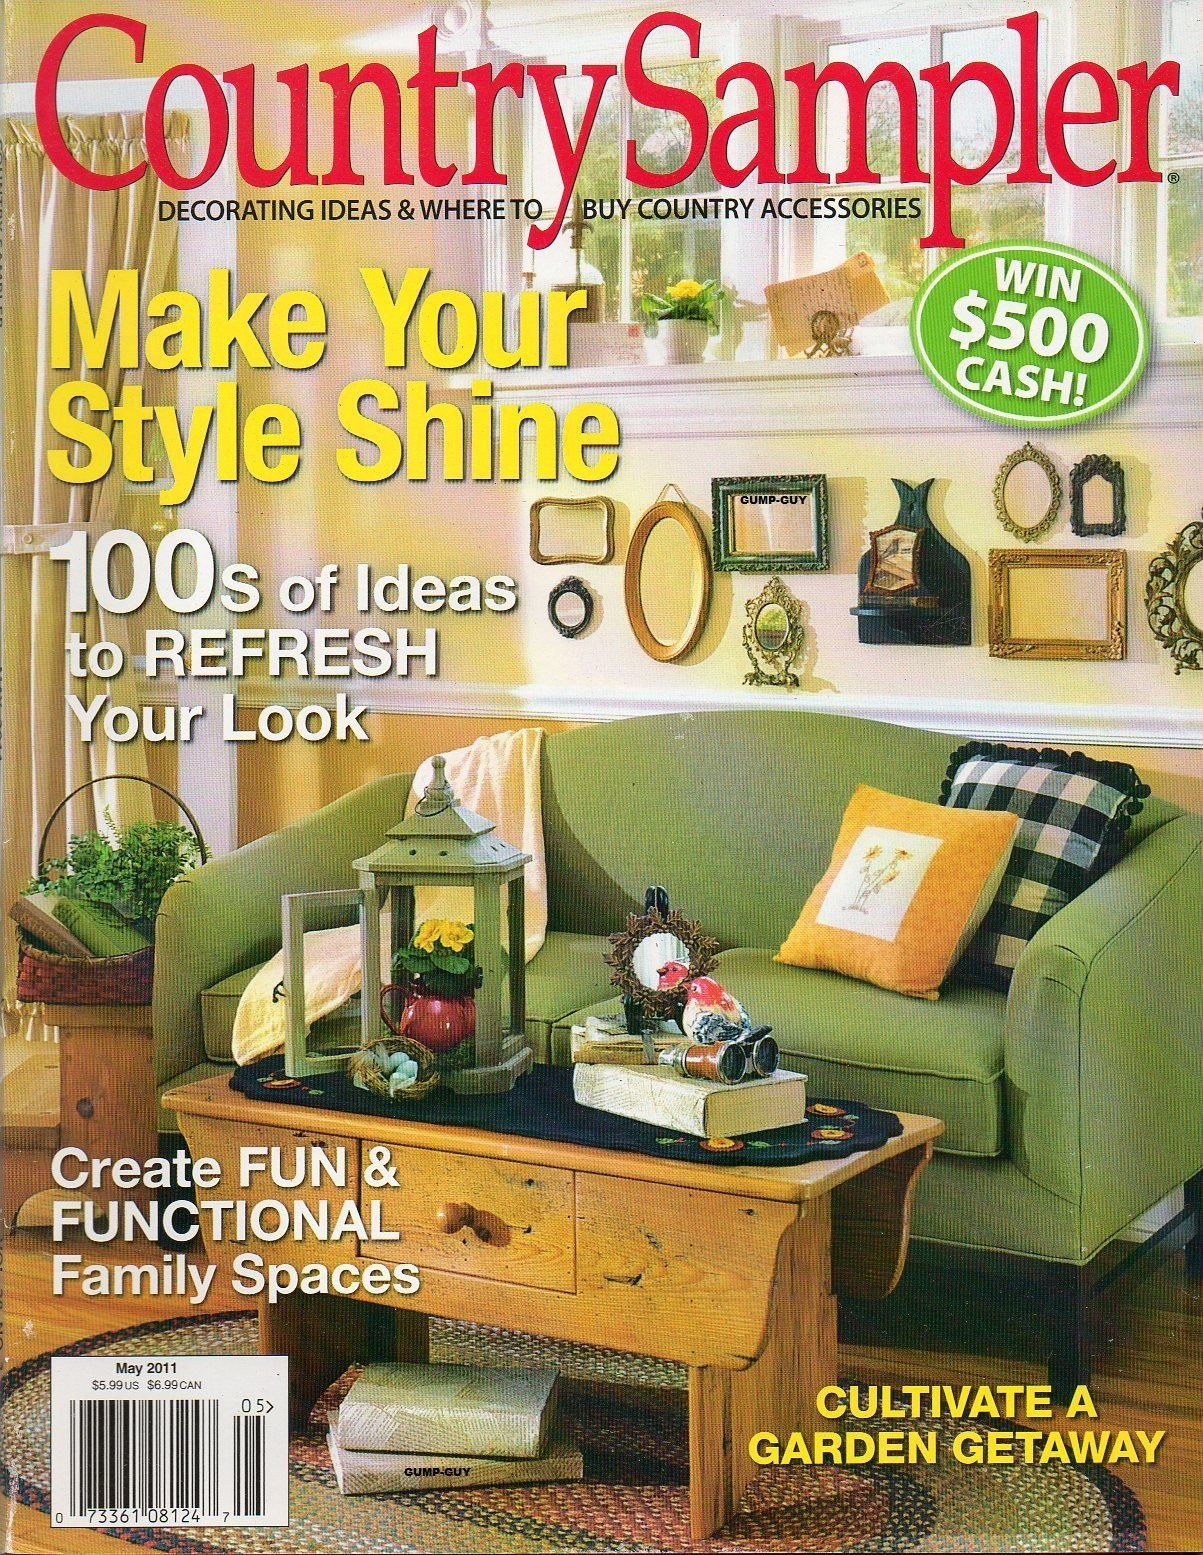 Country Sampler May 2011 Vol 28 No 3 Magazine DECORATING IDEAS ...